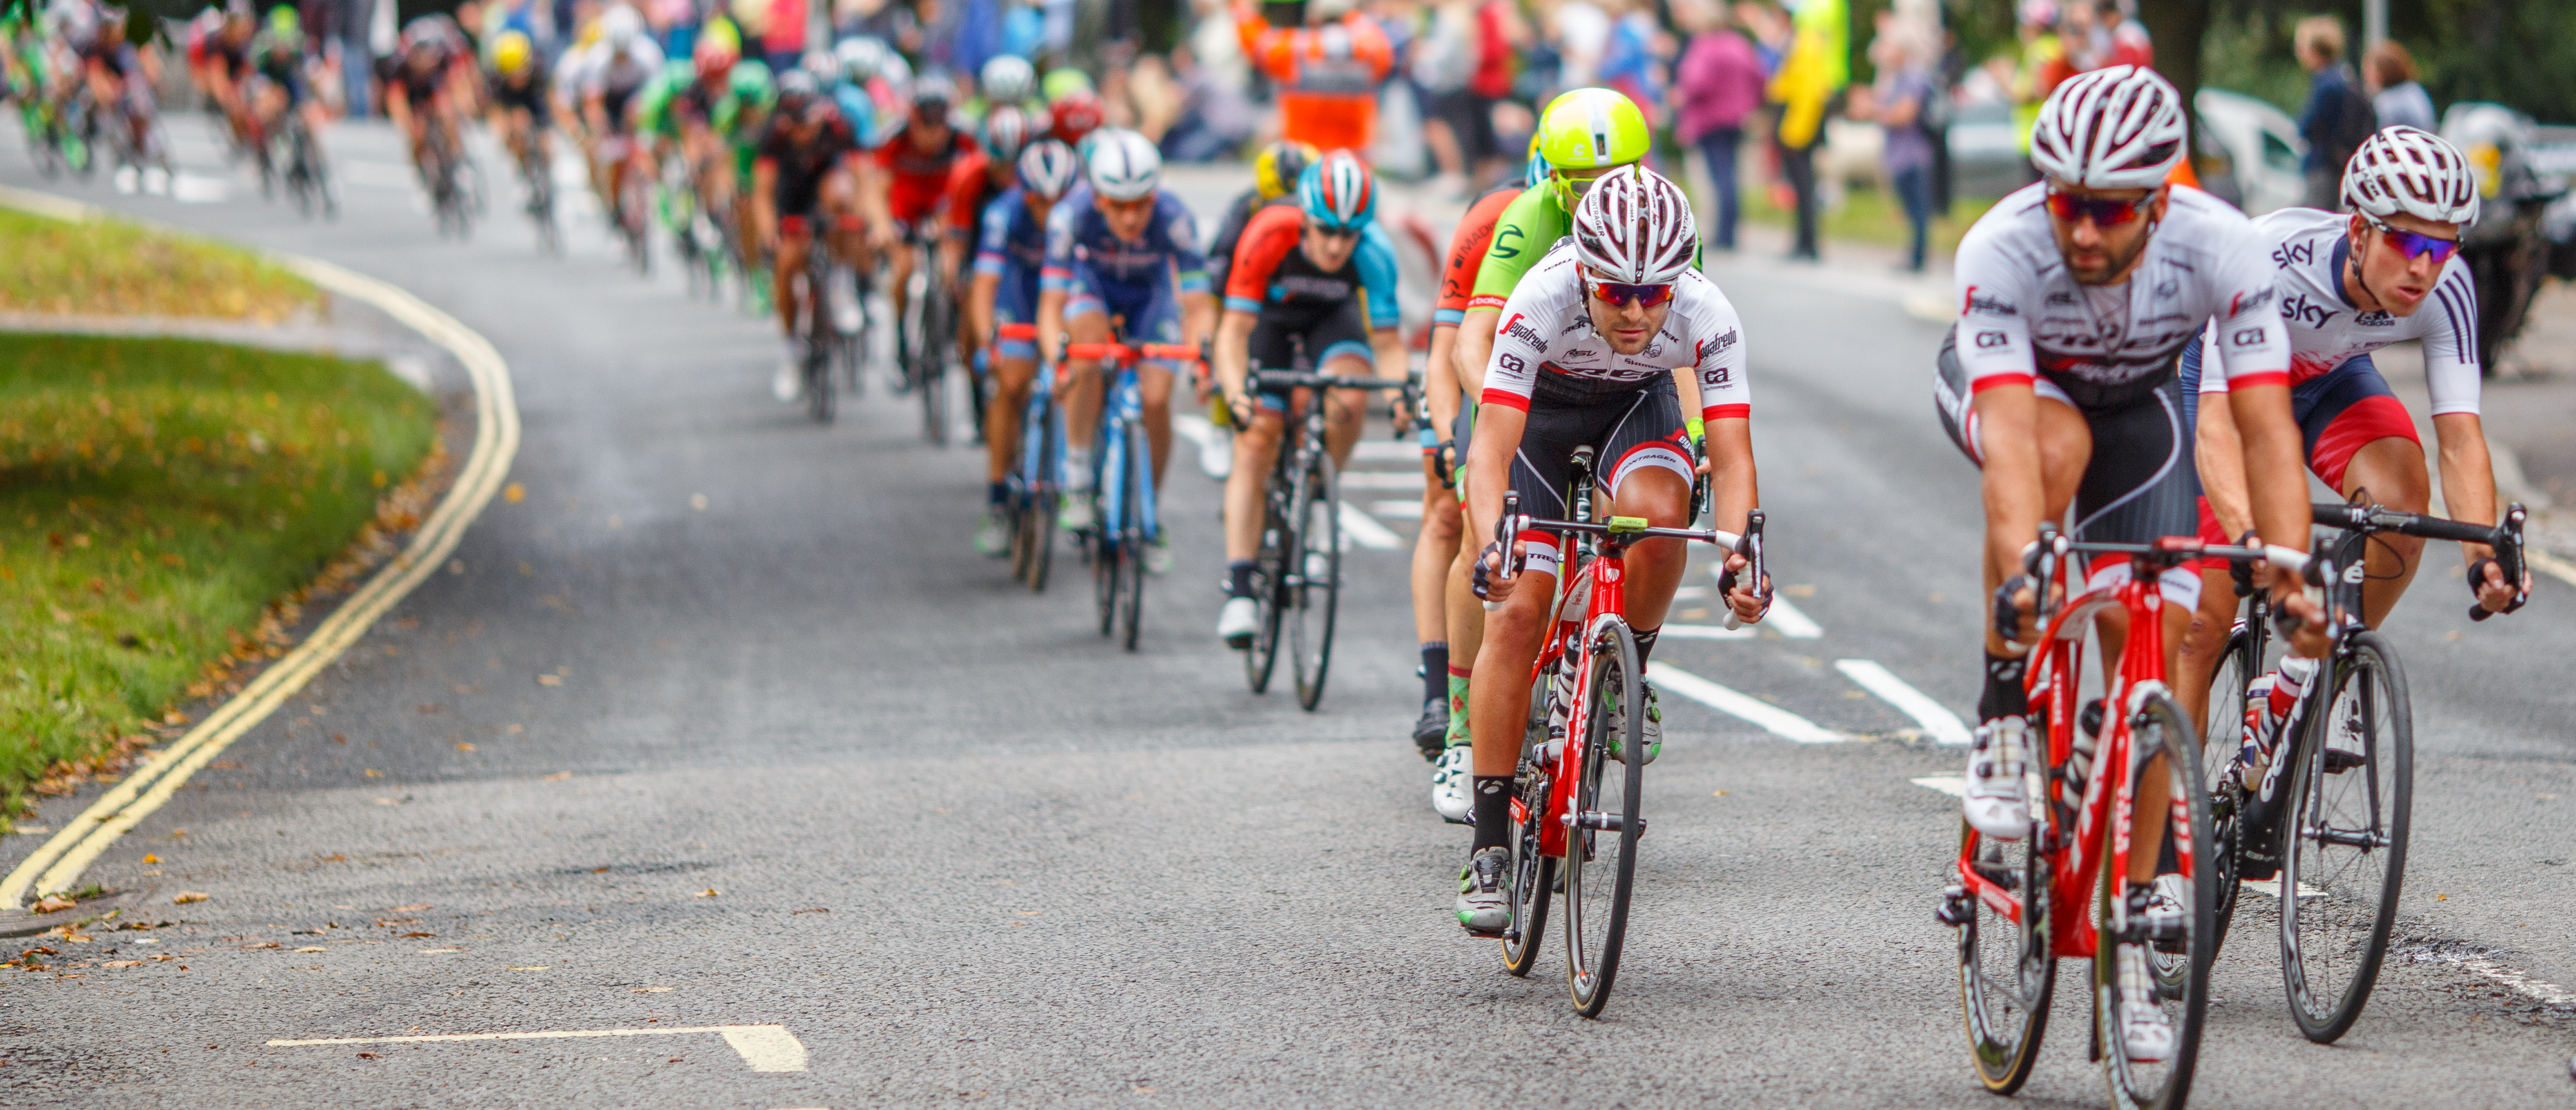 Peloton; picture of a bike race. Hundreds of people on bikes with colorful helmets and bikes.